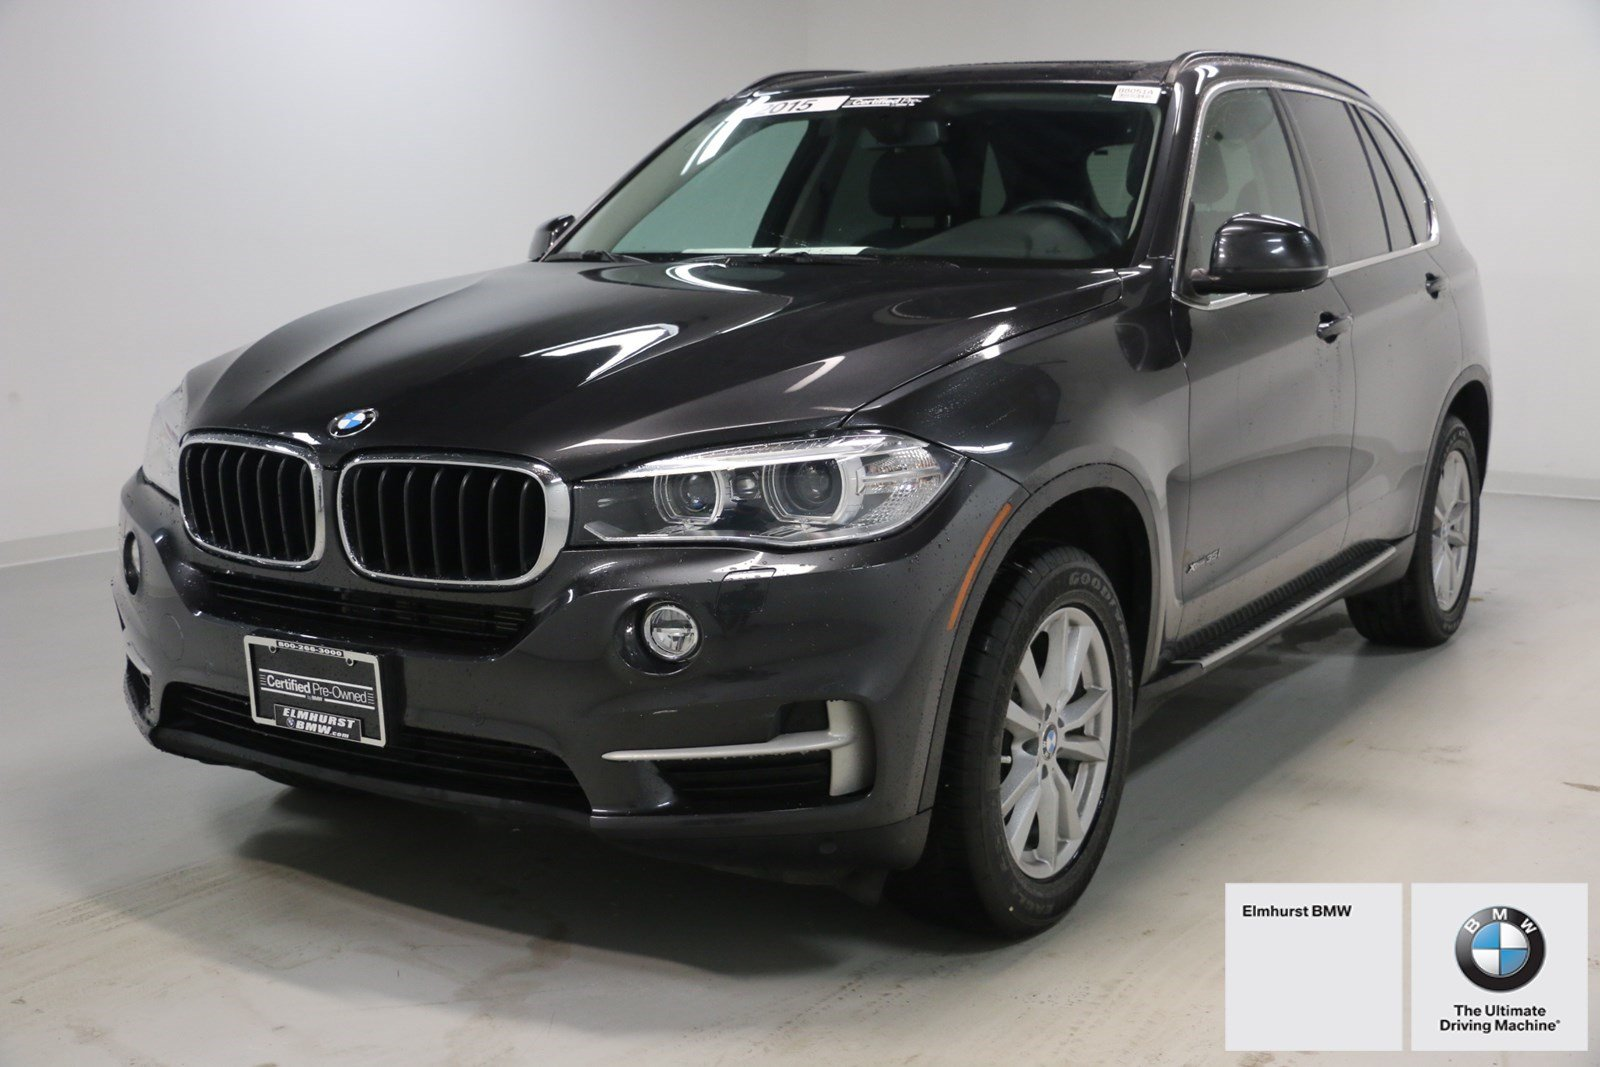 certified pre owned 2015 bmw x5 xdrive35i sport utility in elmhurst b8051a elmhurst bmw. Black Bedroom Furniture Sets. Home Design Ideas